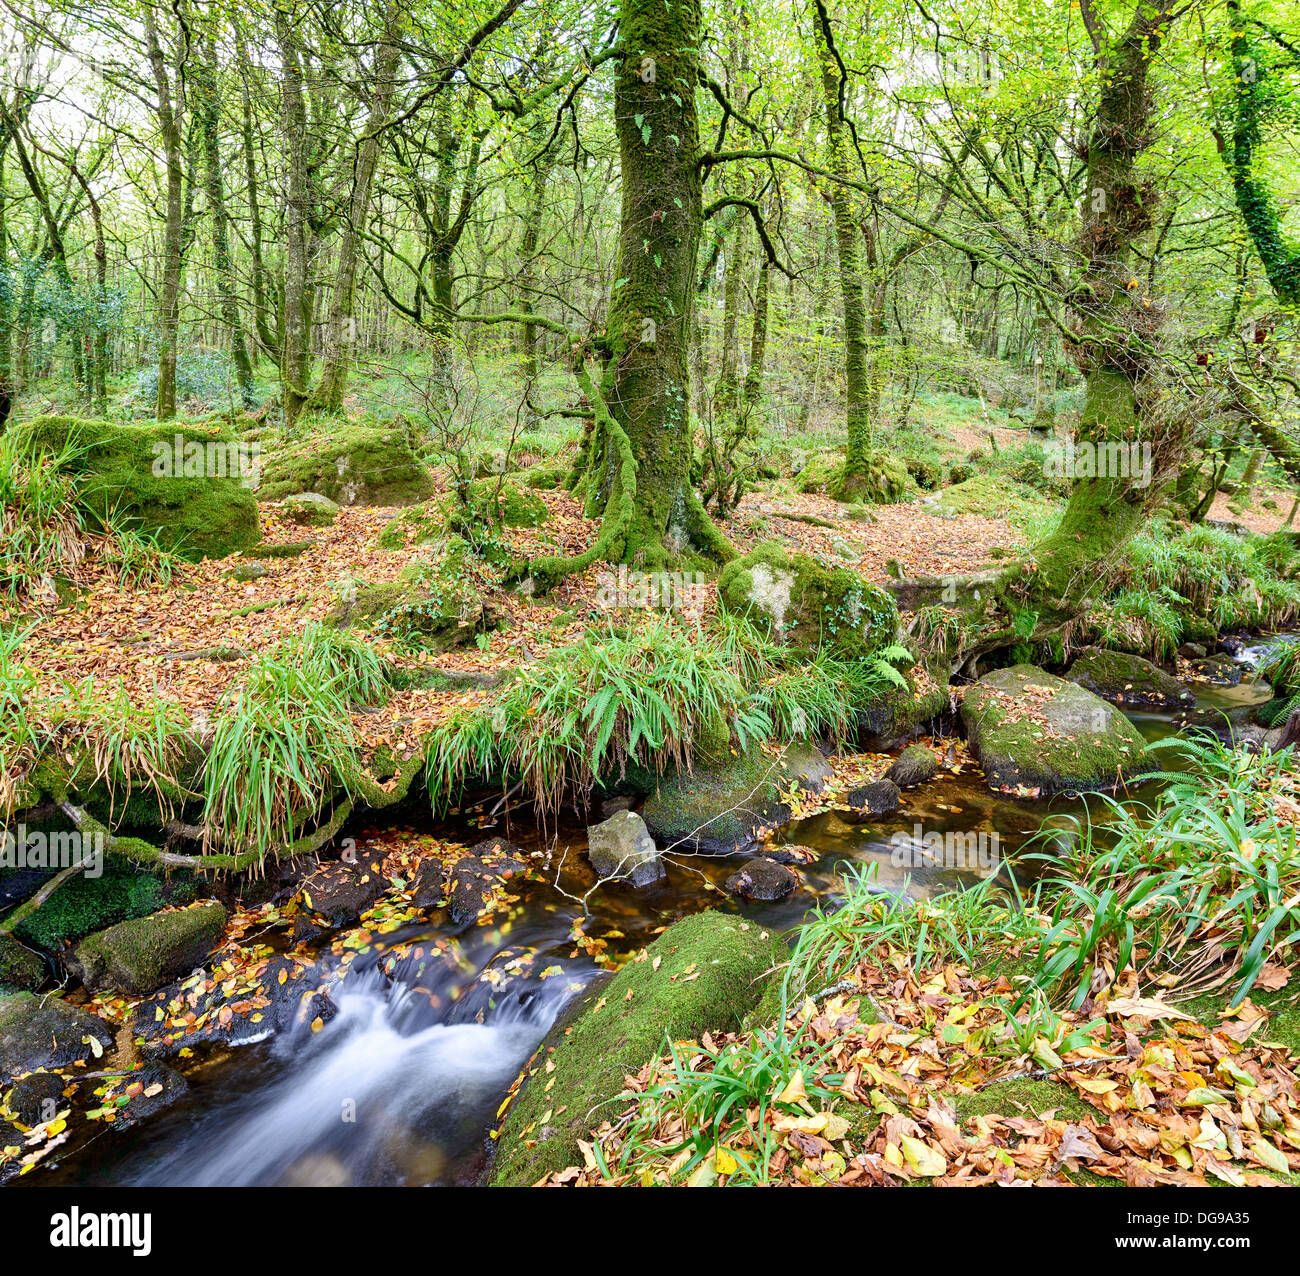 A forest stream flowing across mossy boulders on the edge of Bodmin Moor in Cornwall - Stock Image